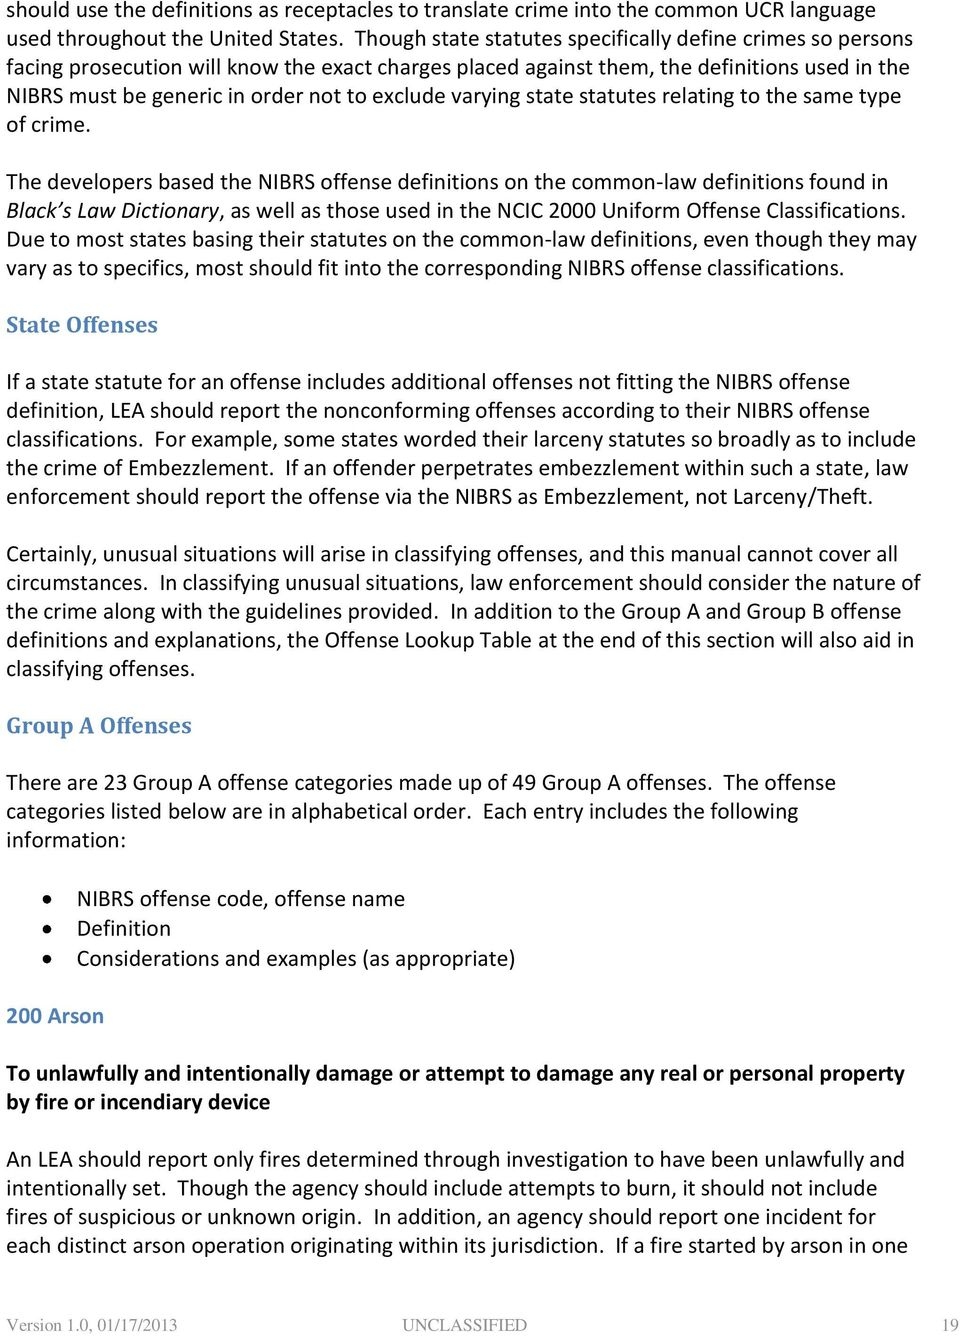 National Incident-Based Reporting System (NIBRS) User Manual